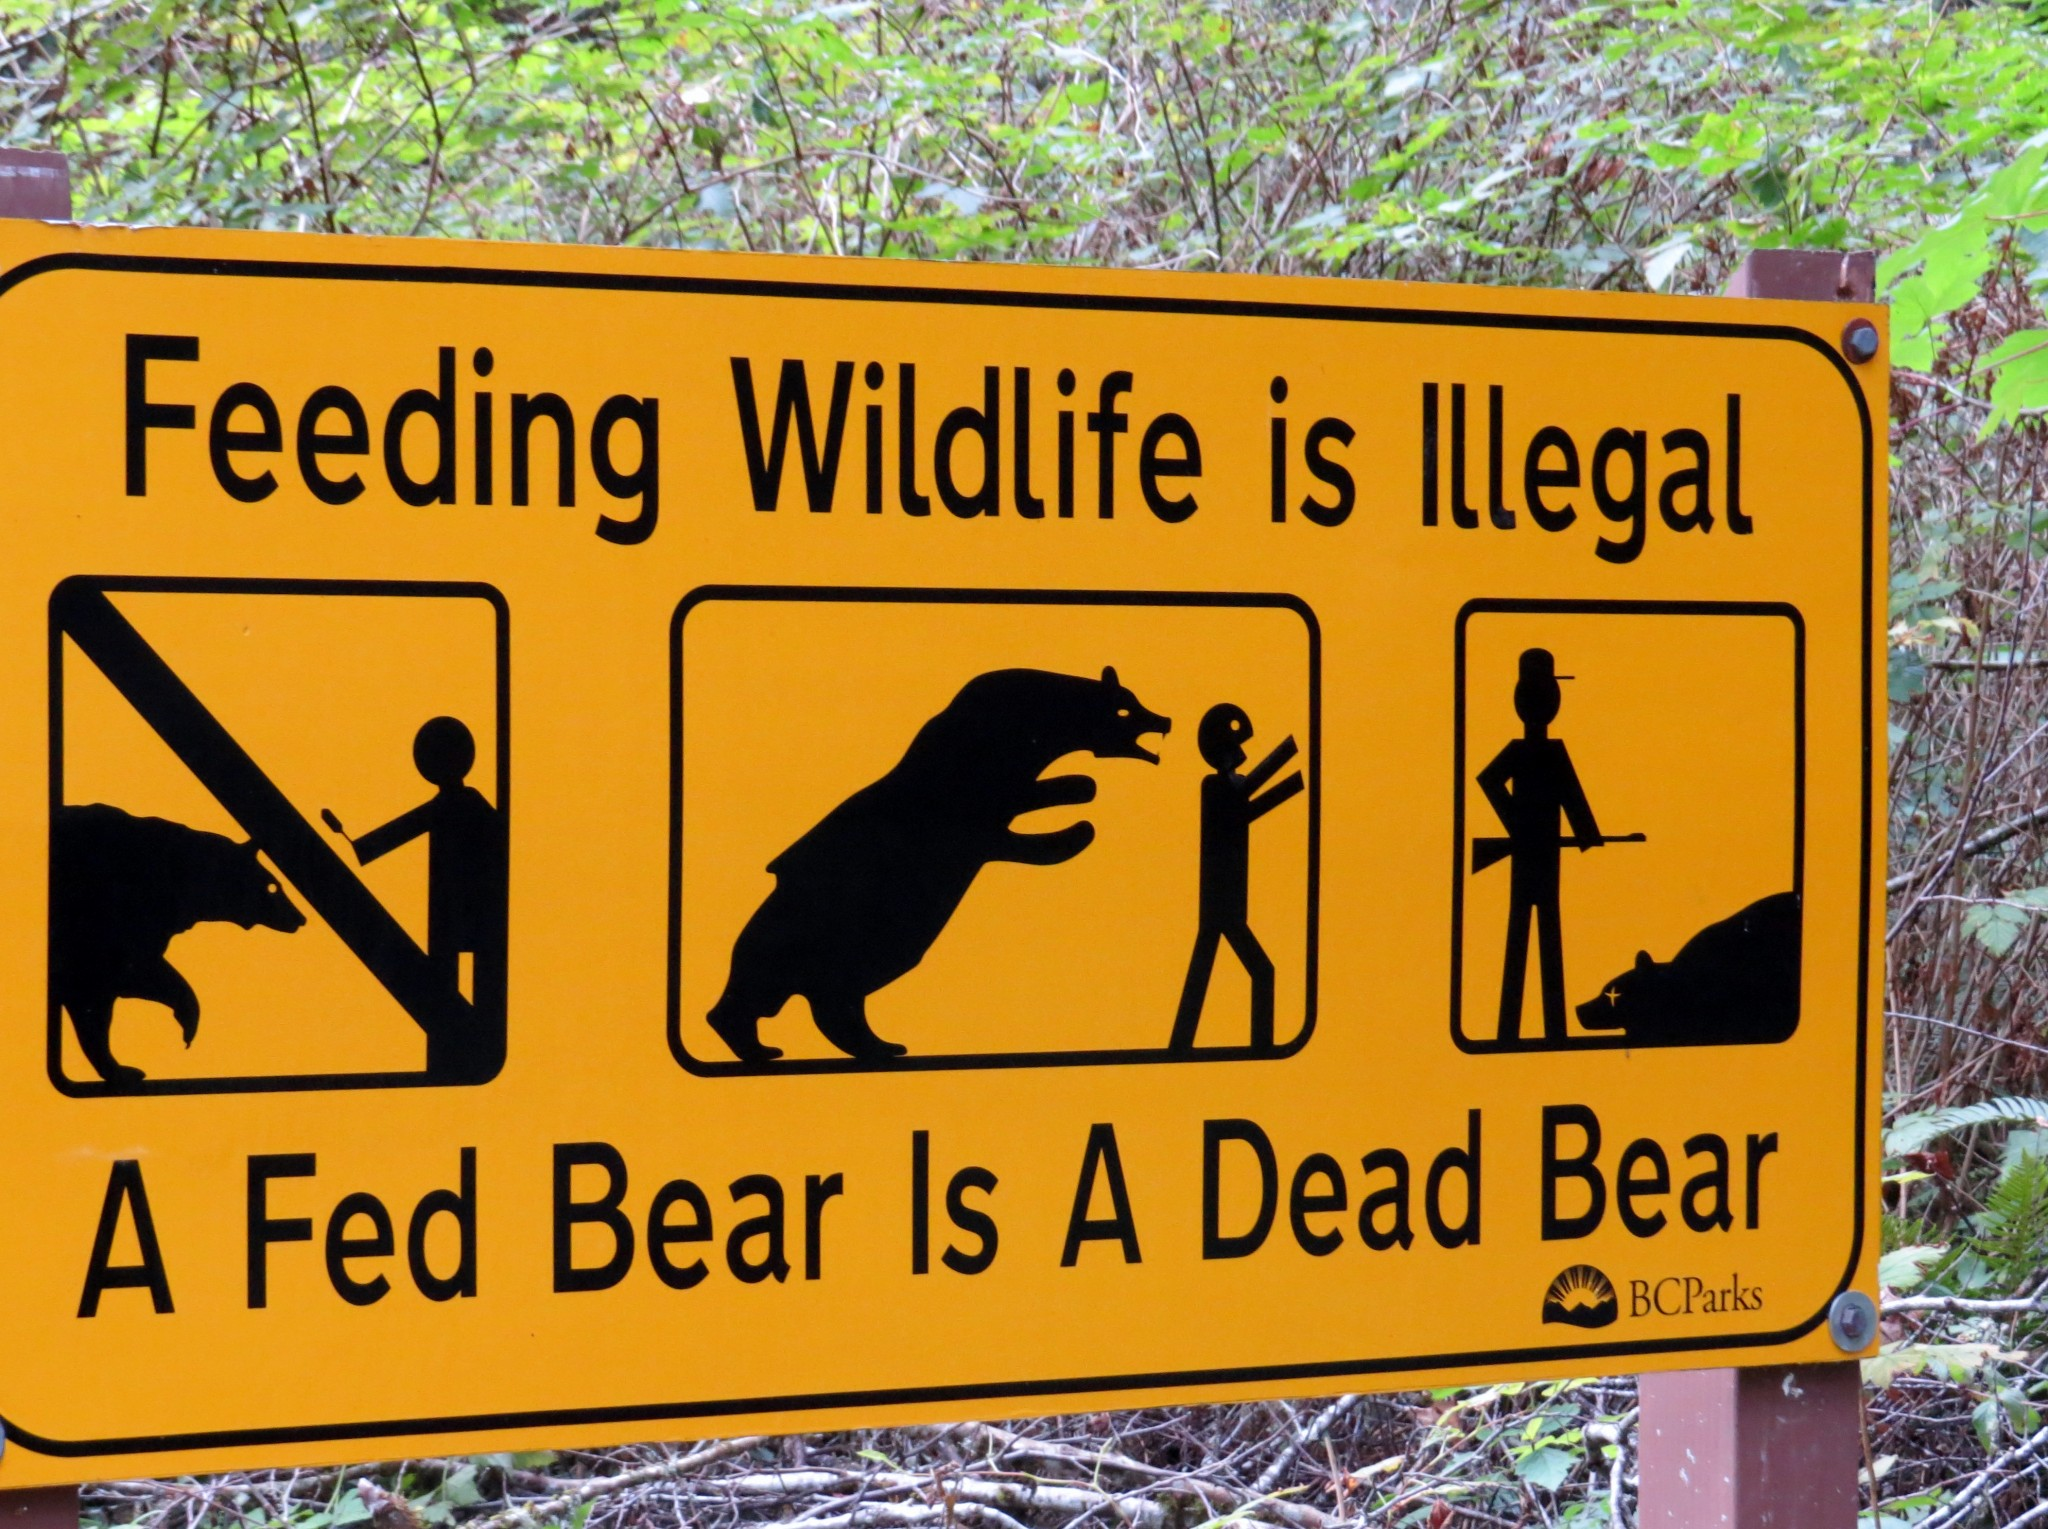 Feeding Wildlife is illegal sign